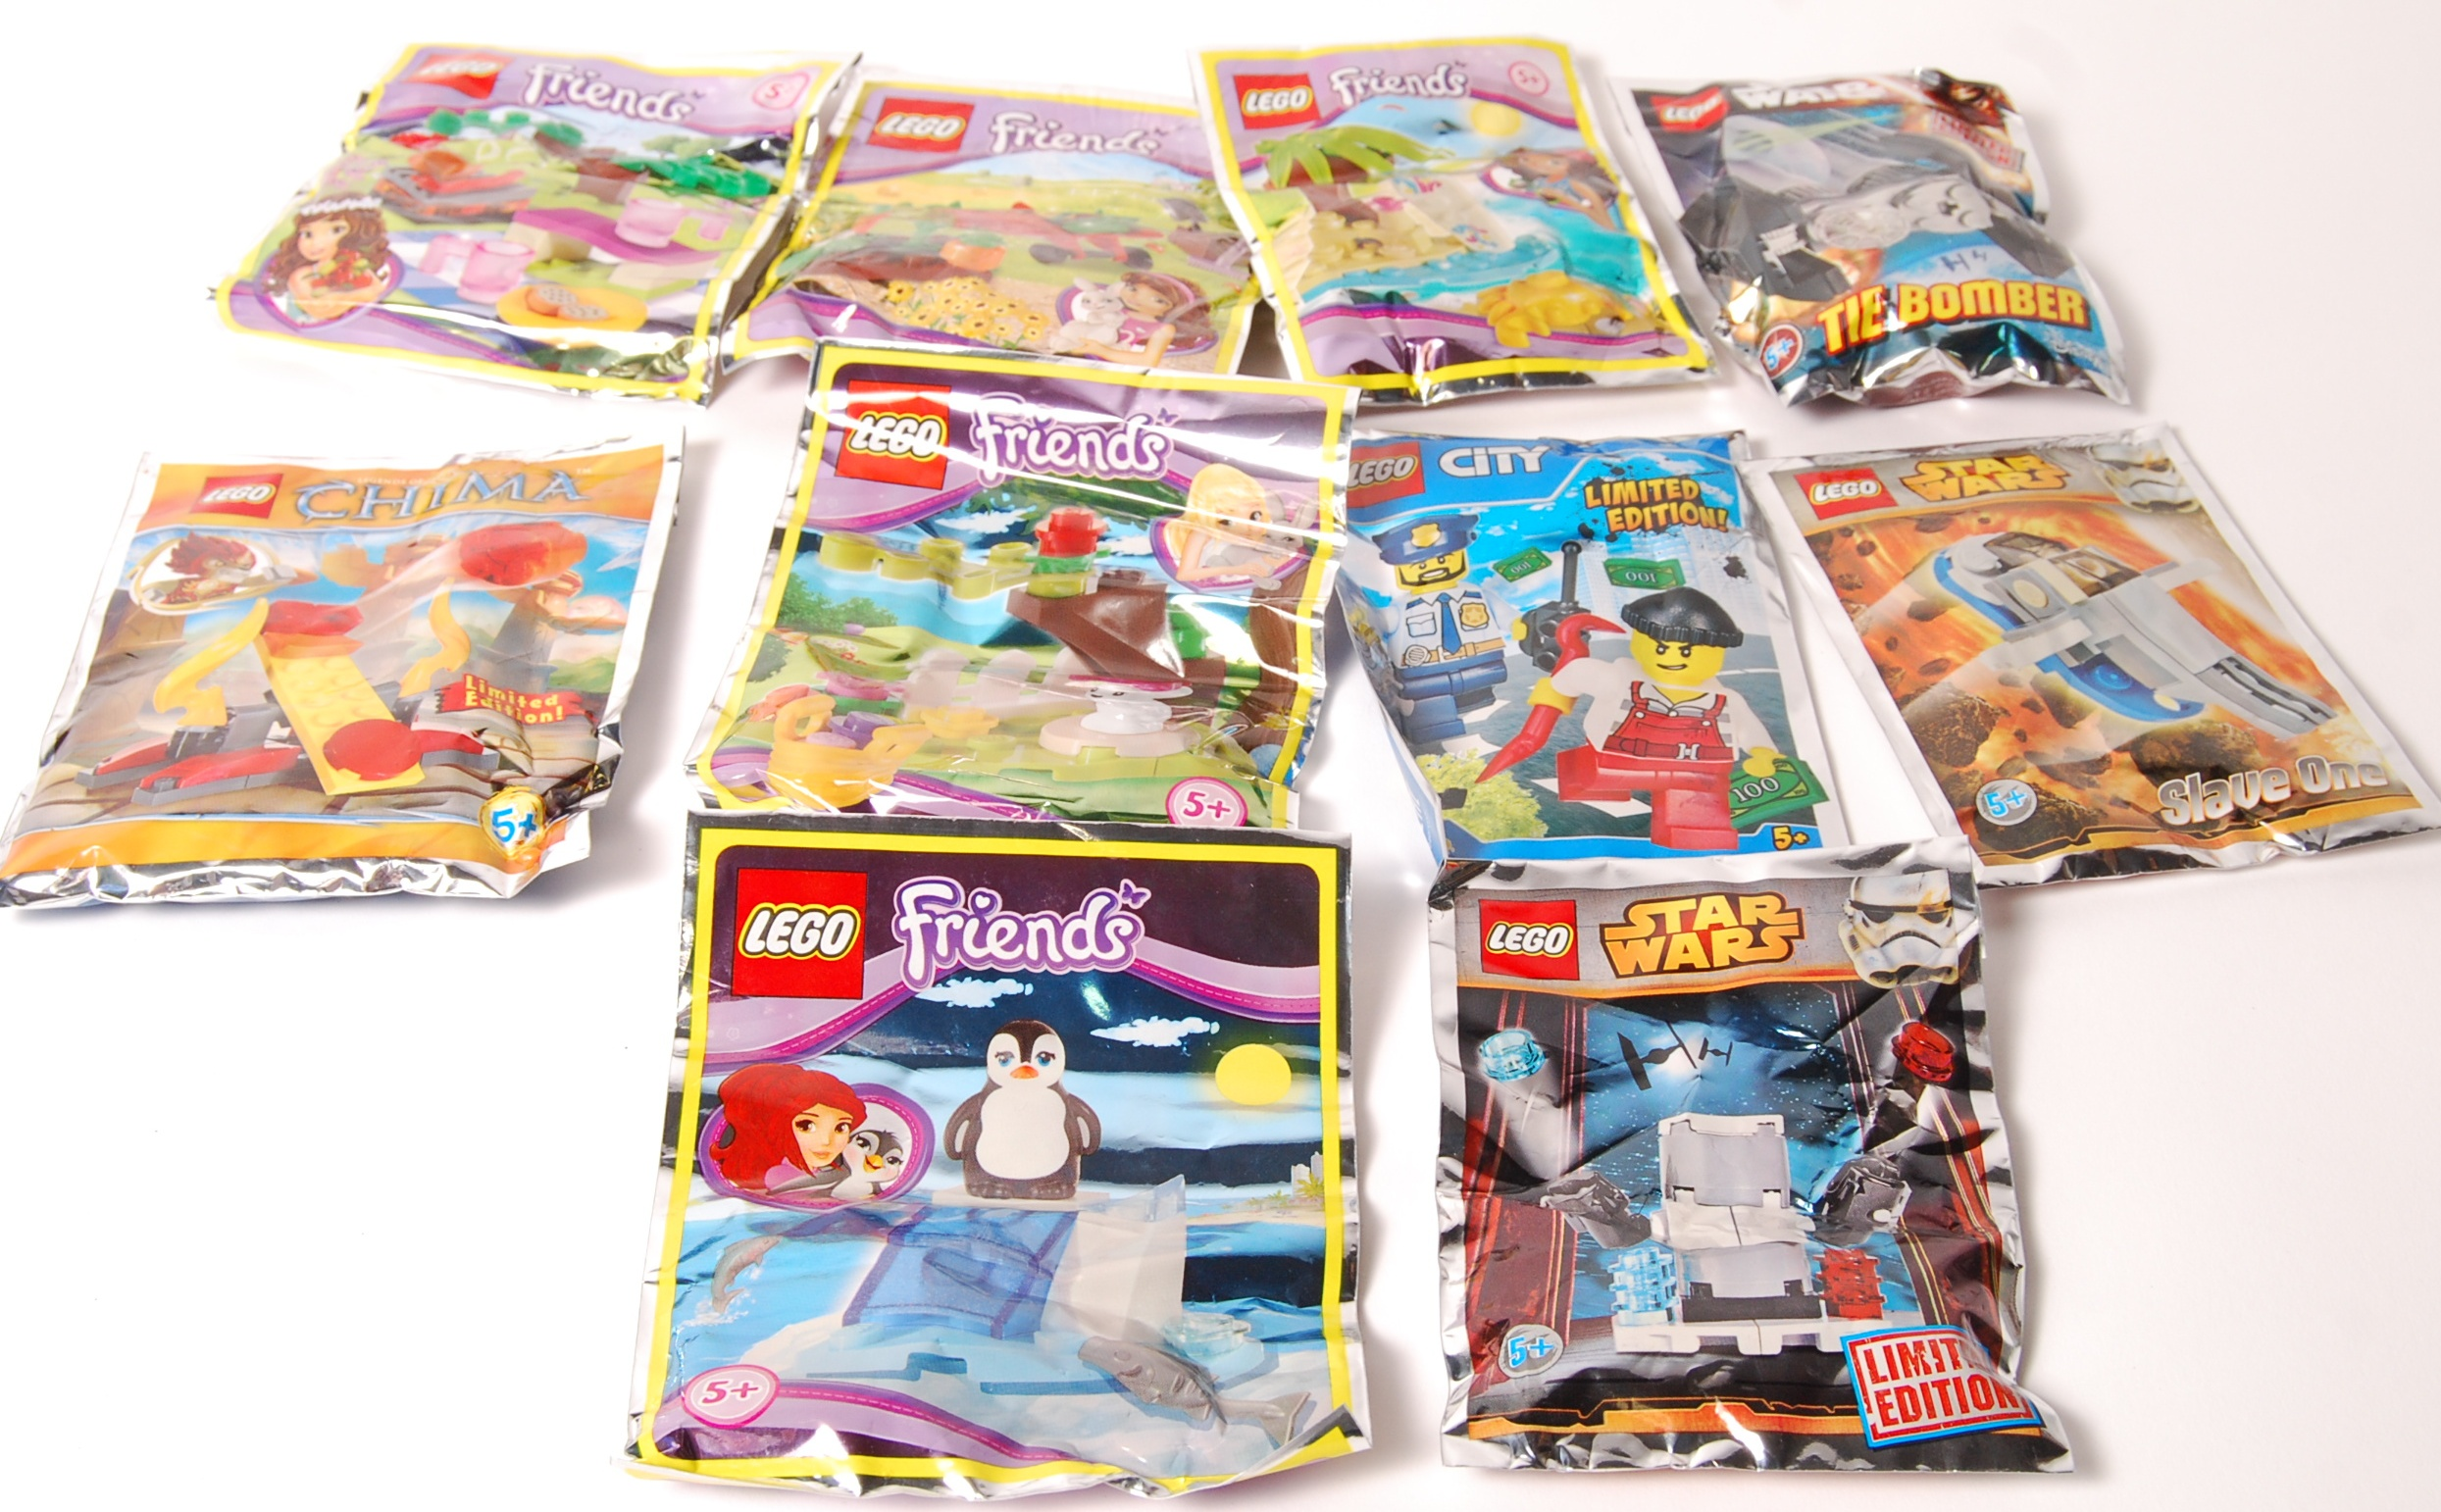 Lot 20 - LEGO FOIL PACK SETS INCLUDING STAR WARS, FRIENDS,